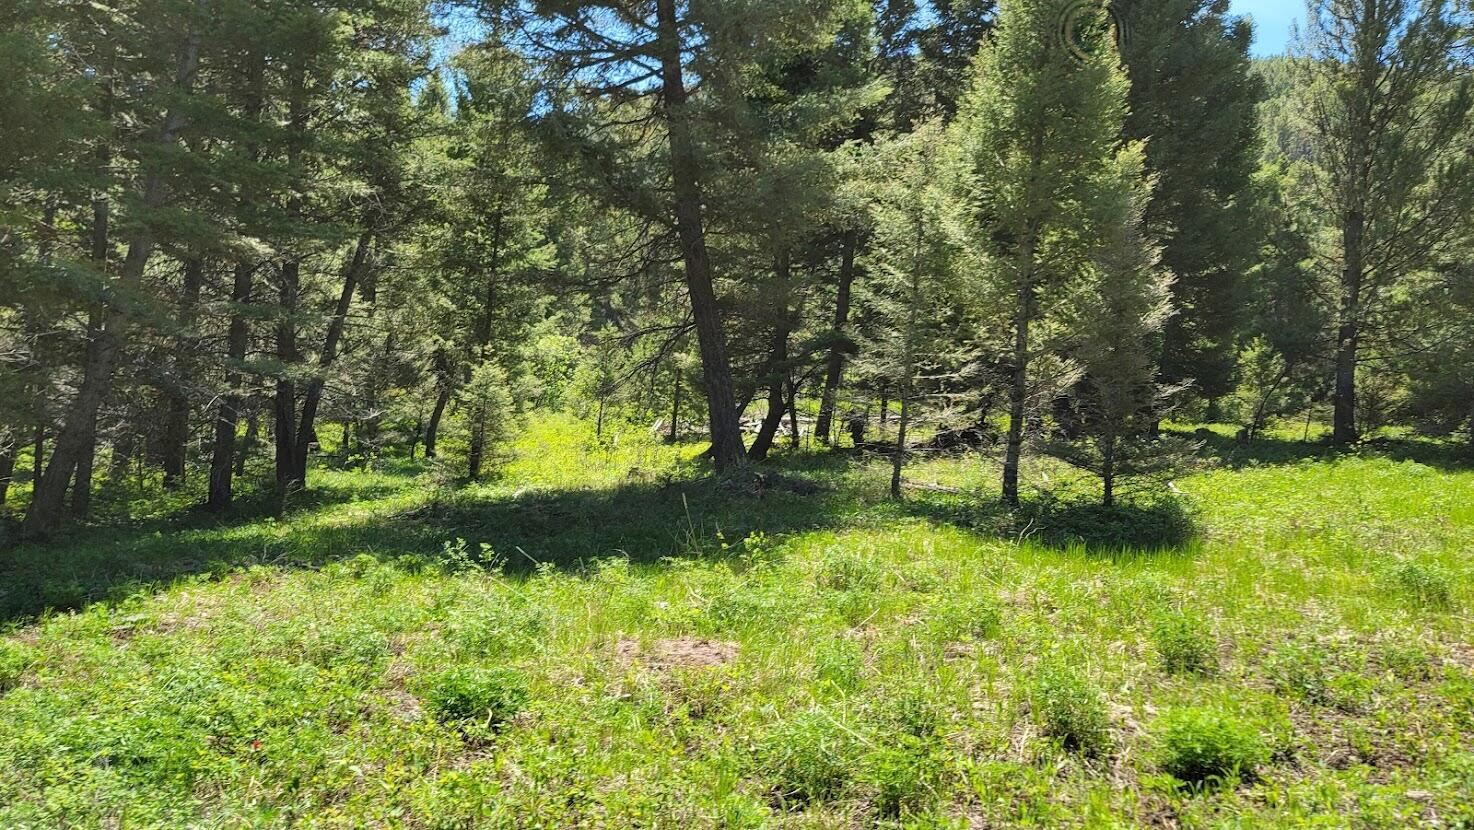 Borders over 20,000 Acres of Public Land, Timber, Views for Miles, Plentiful Wildlife (Deer, Elk, Bear, Cats), Private, Building Sites, Spring, Good Access Roads Call Dan & Cortney Senecal at 406-439-5414, or your real estate professional.